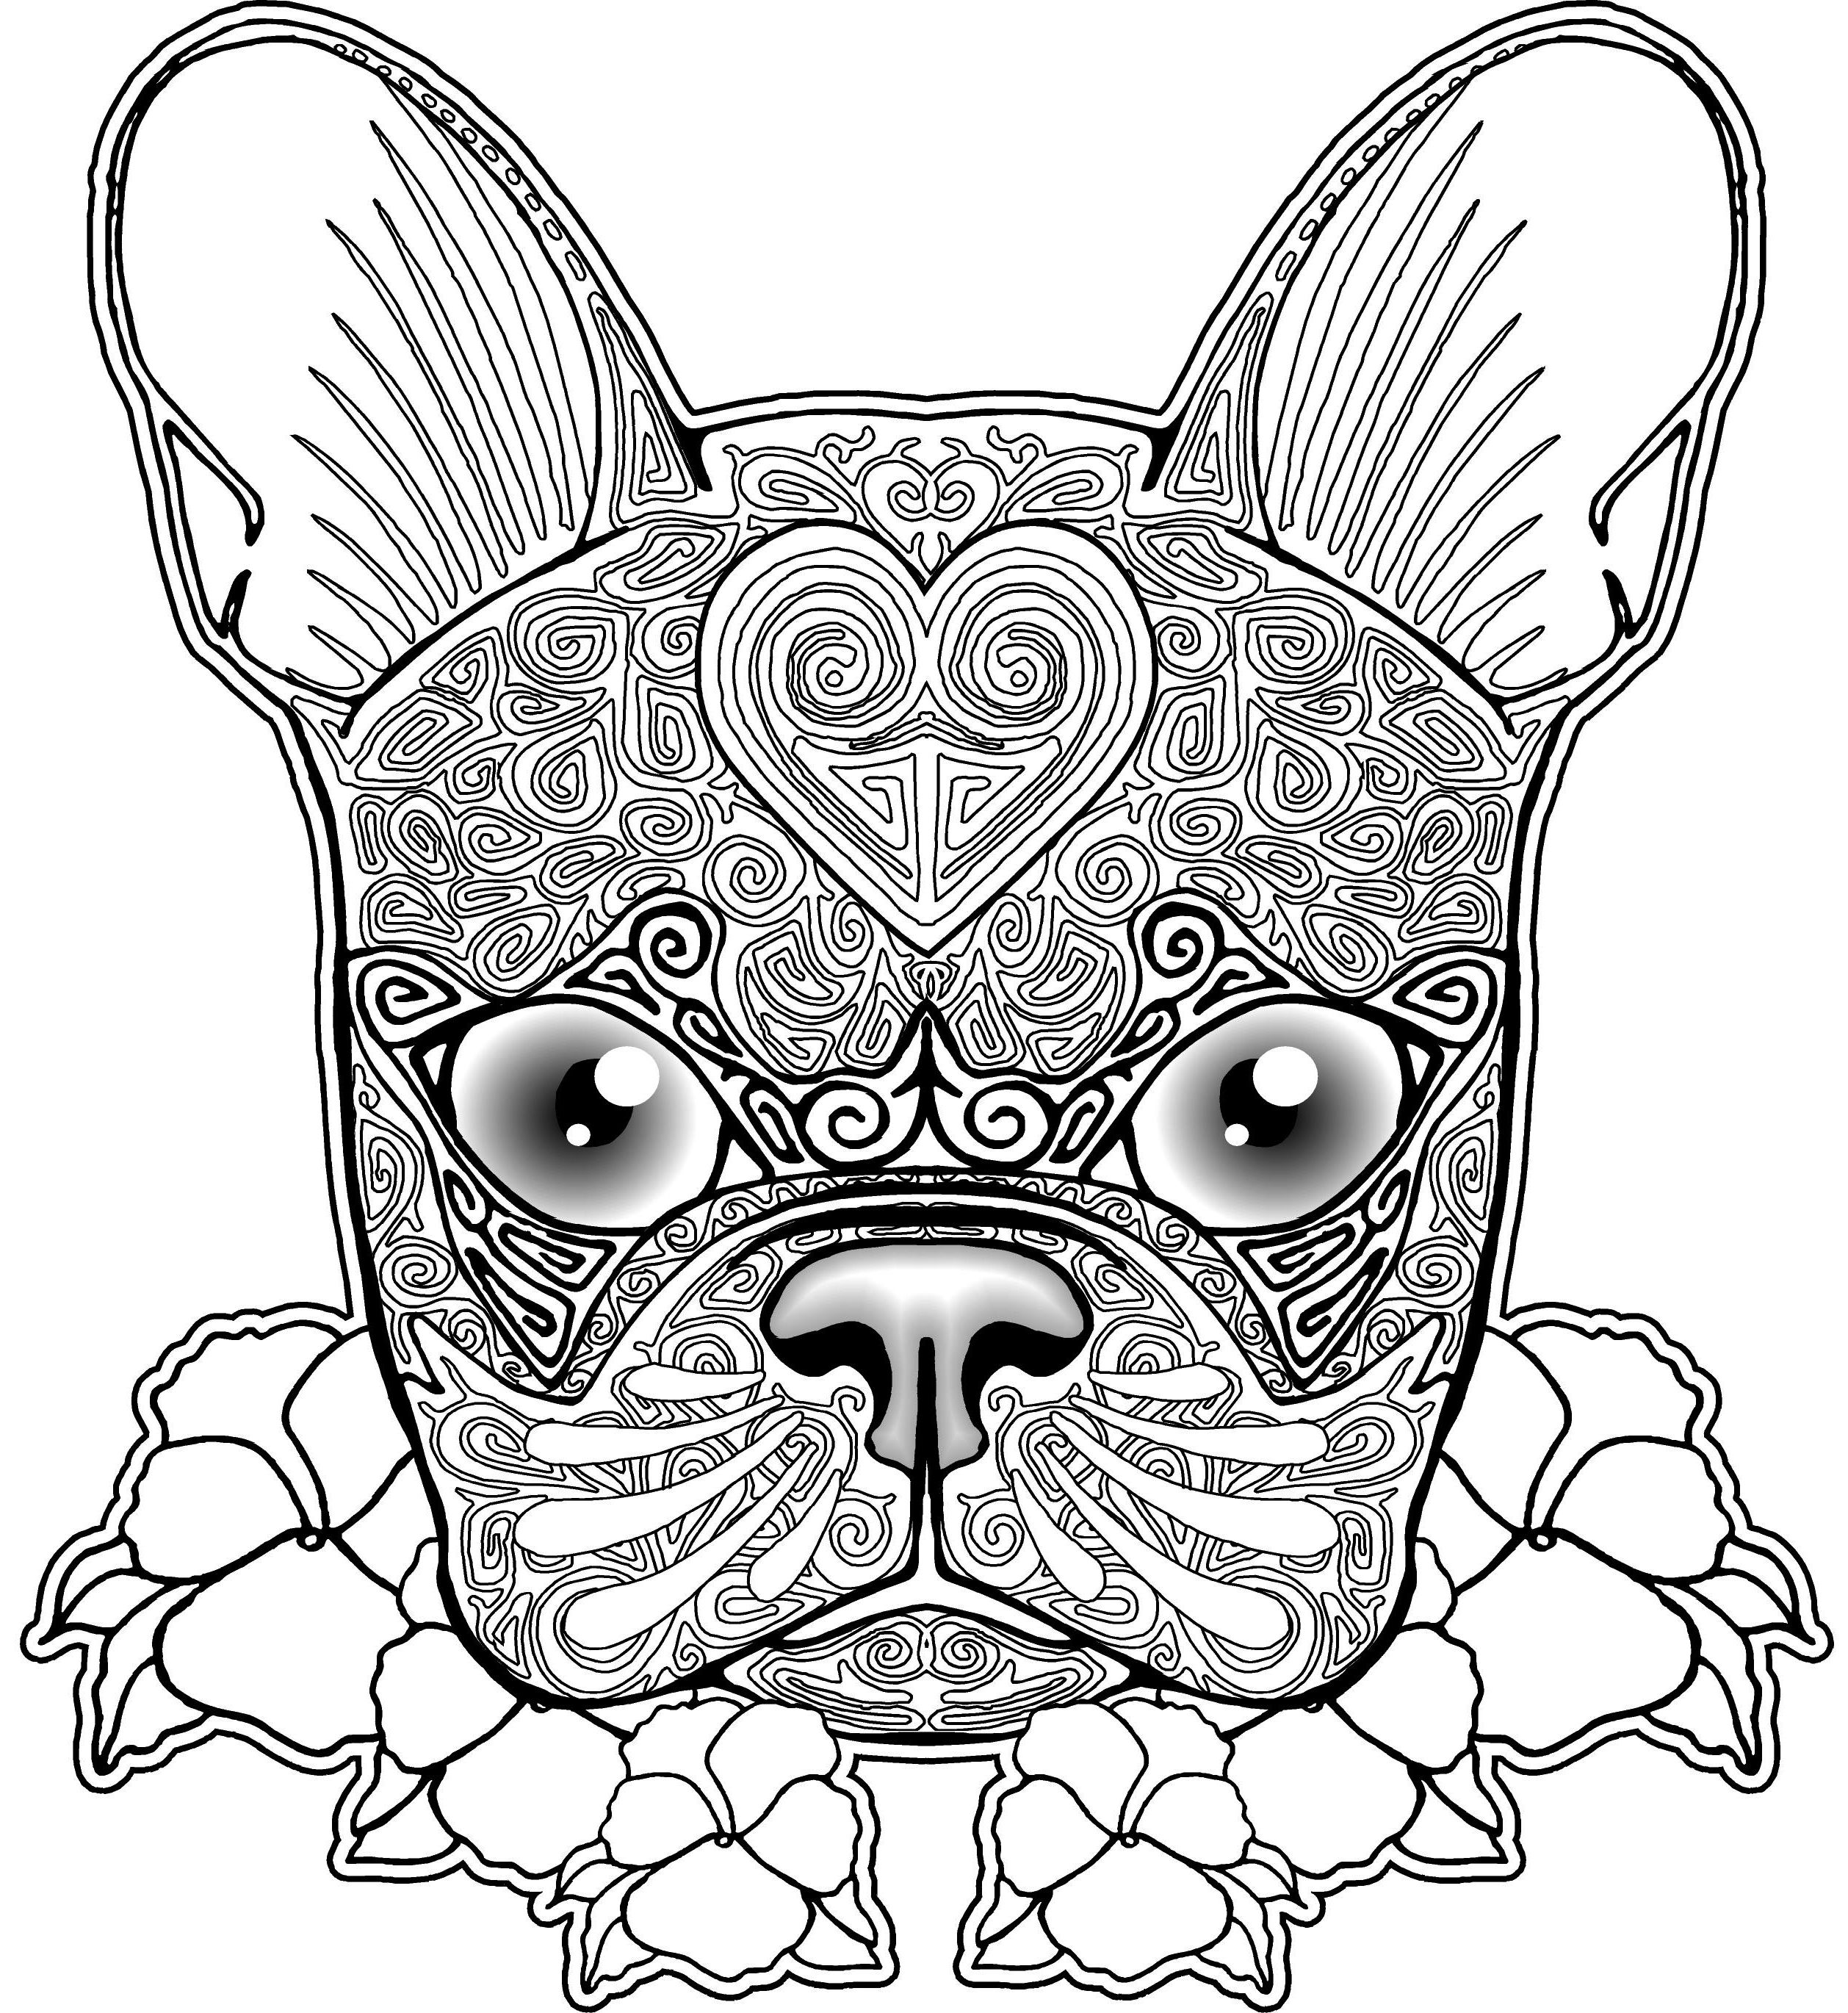 colour in pictures of dogs puppy coloring pages best coloring pages for kids colour pictures dogs in of